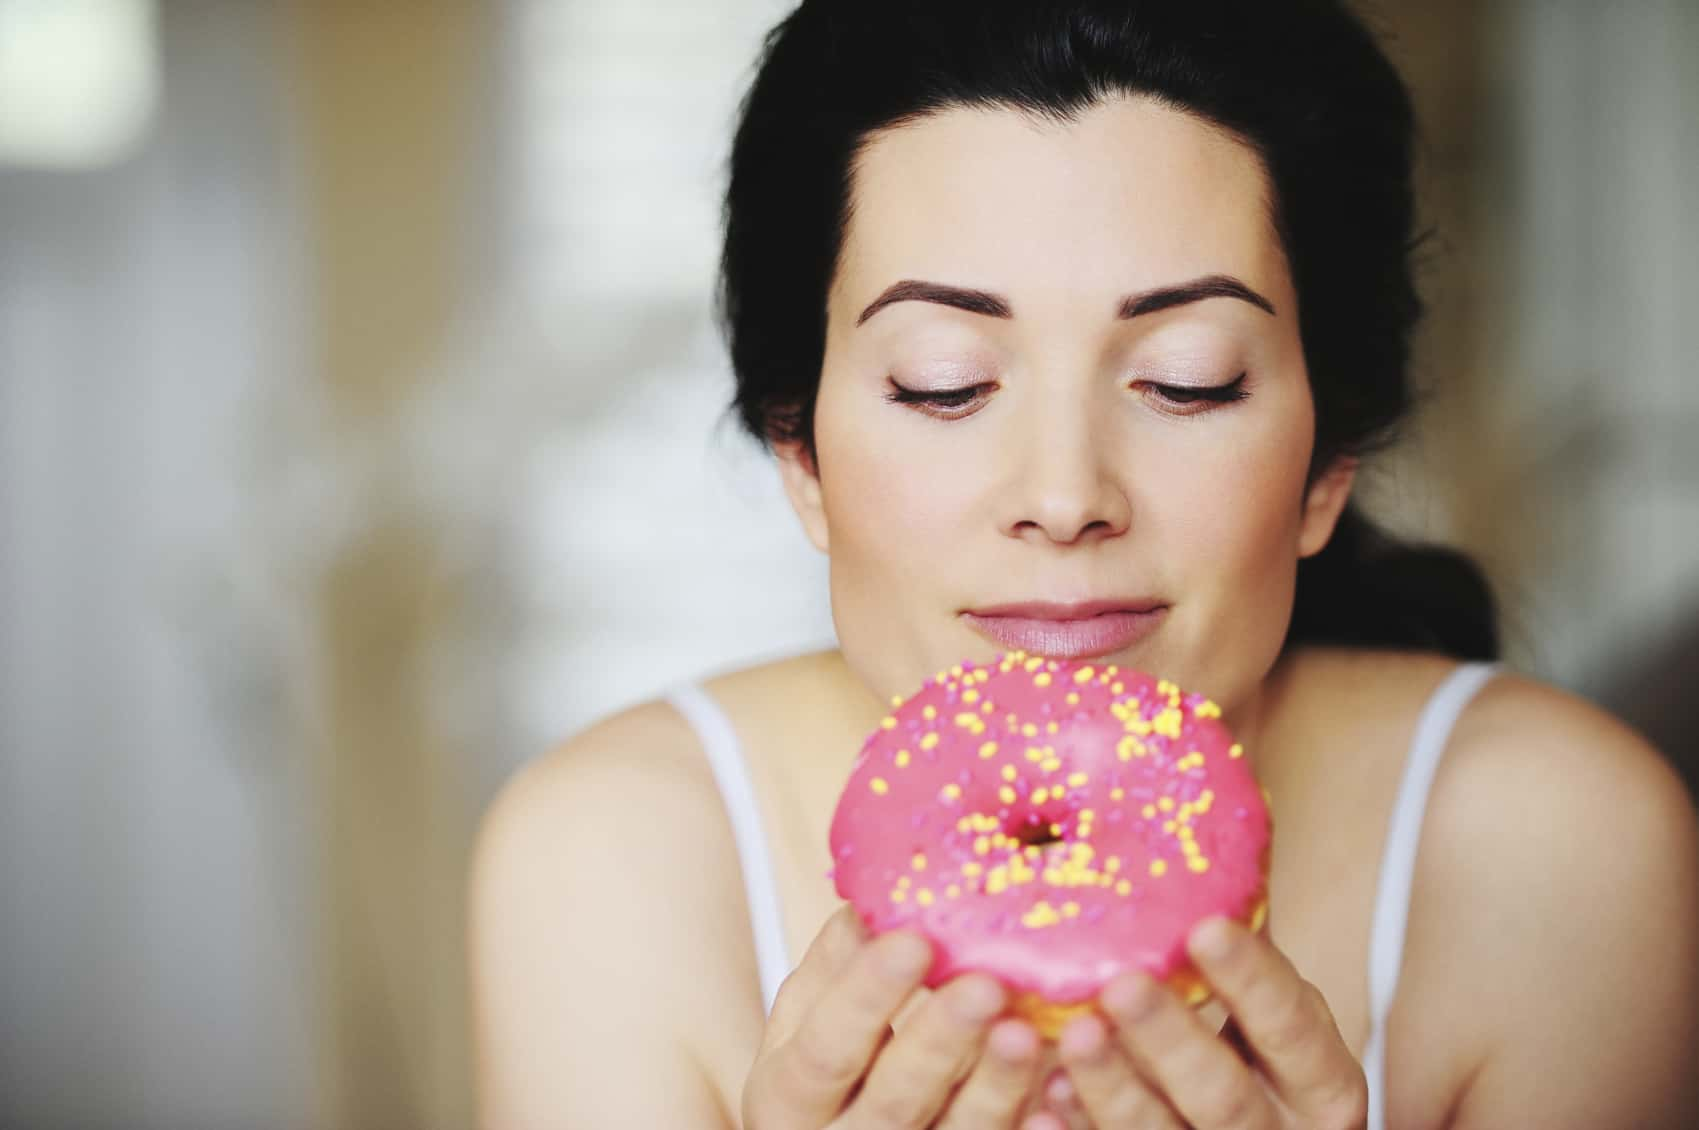 Pink donut High Res Image